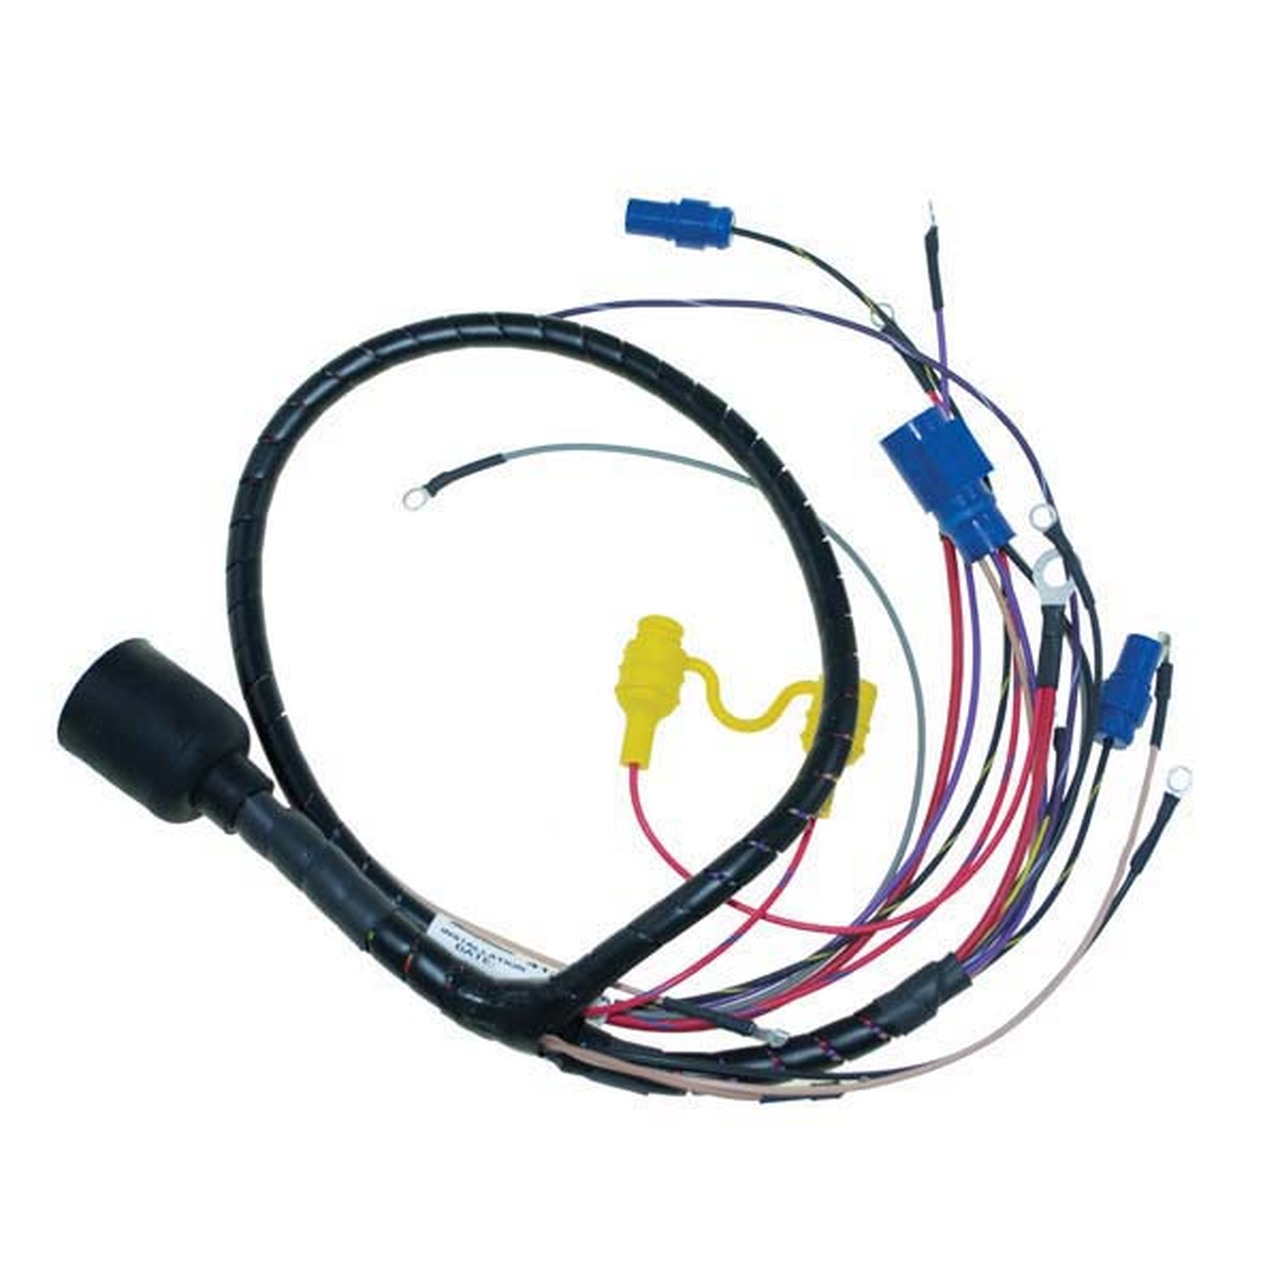 CDI 413-3036 Johnson Evinrude Harness on omc fuel tank, omc neutral safety switch, omc inboard outboard wiring diagrams, omc cobra parts diagram, omc oil cooler, omc remote control, omc voltage regulator, omc control box, omc gauges, omc cobra outdrive,